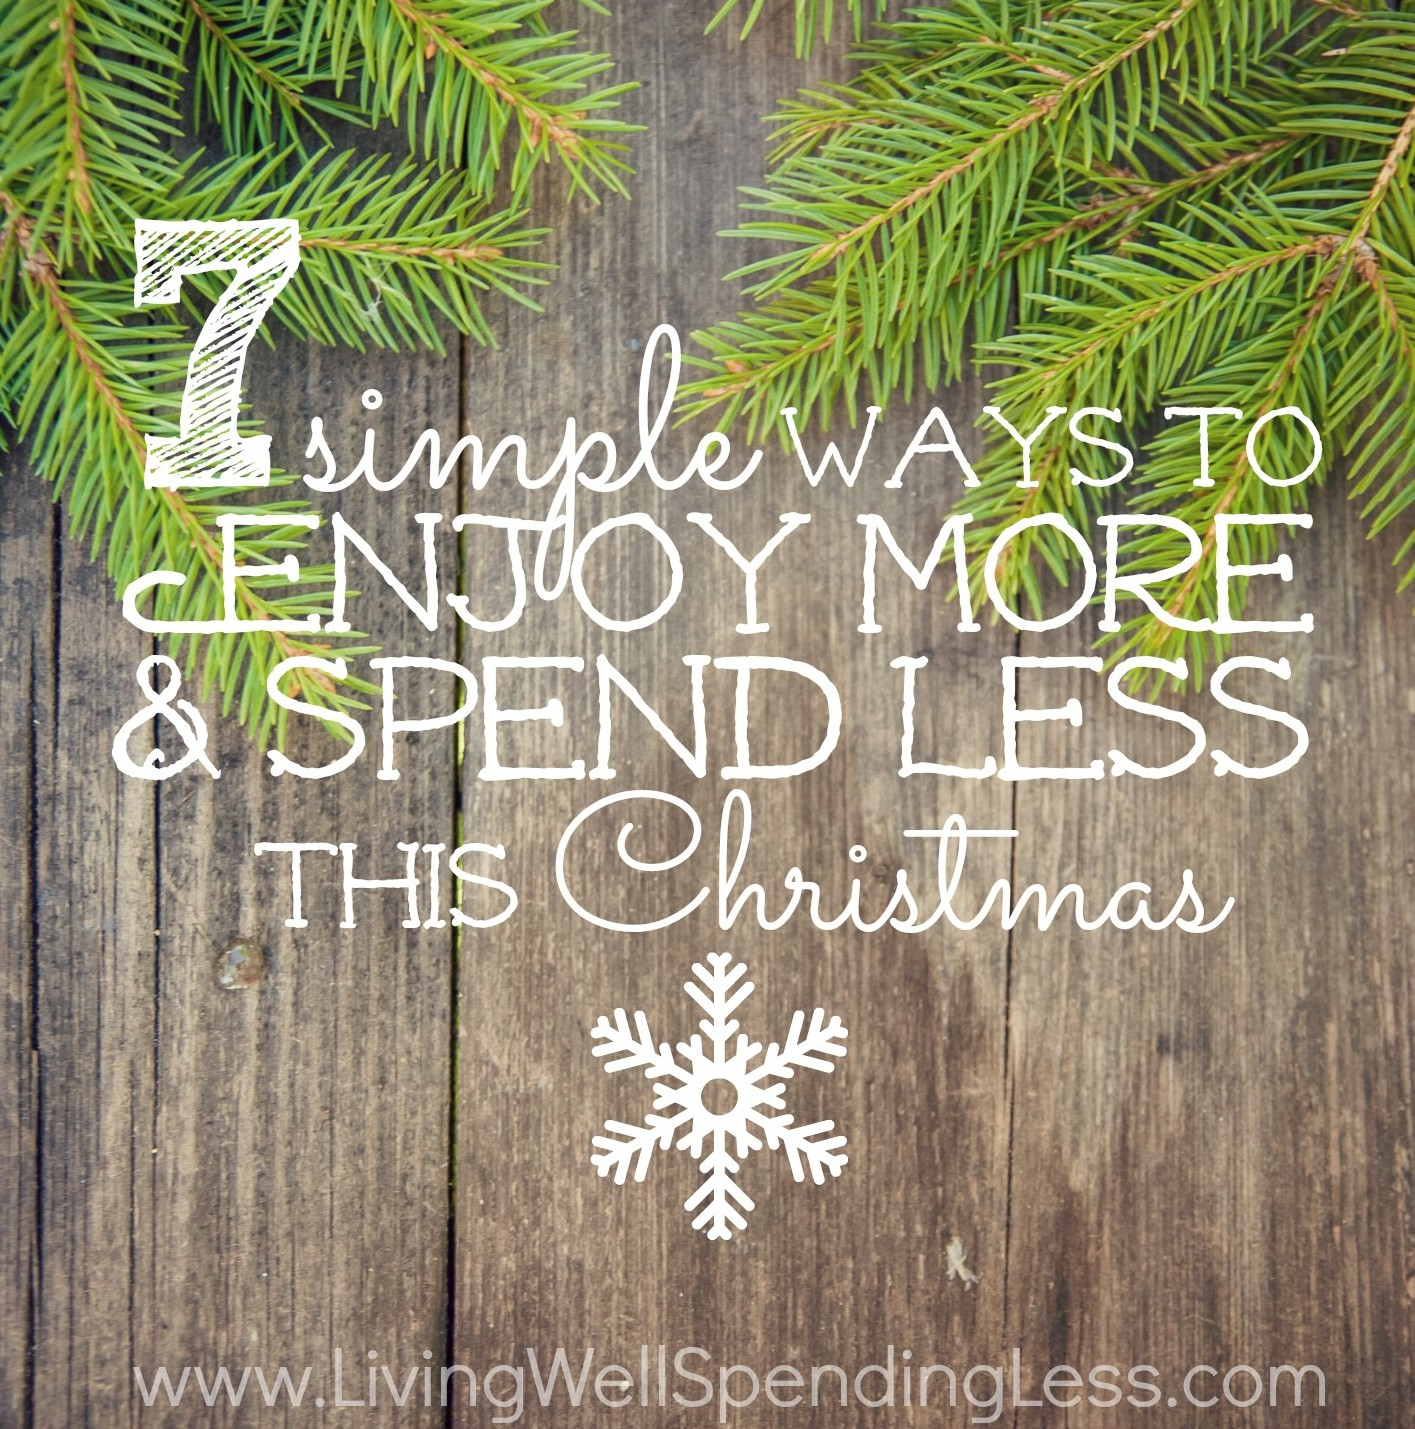 Living Well Spending Less: Simple Ways To Enjoy More & Spend Less This Christmas